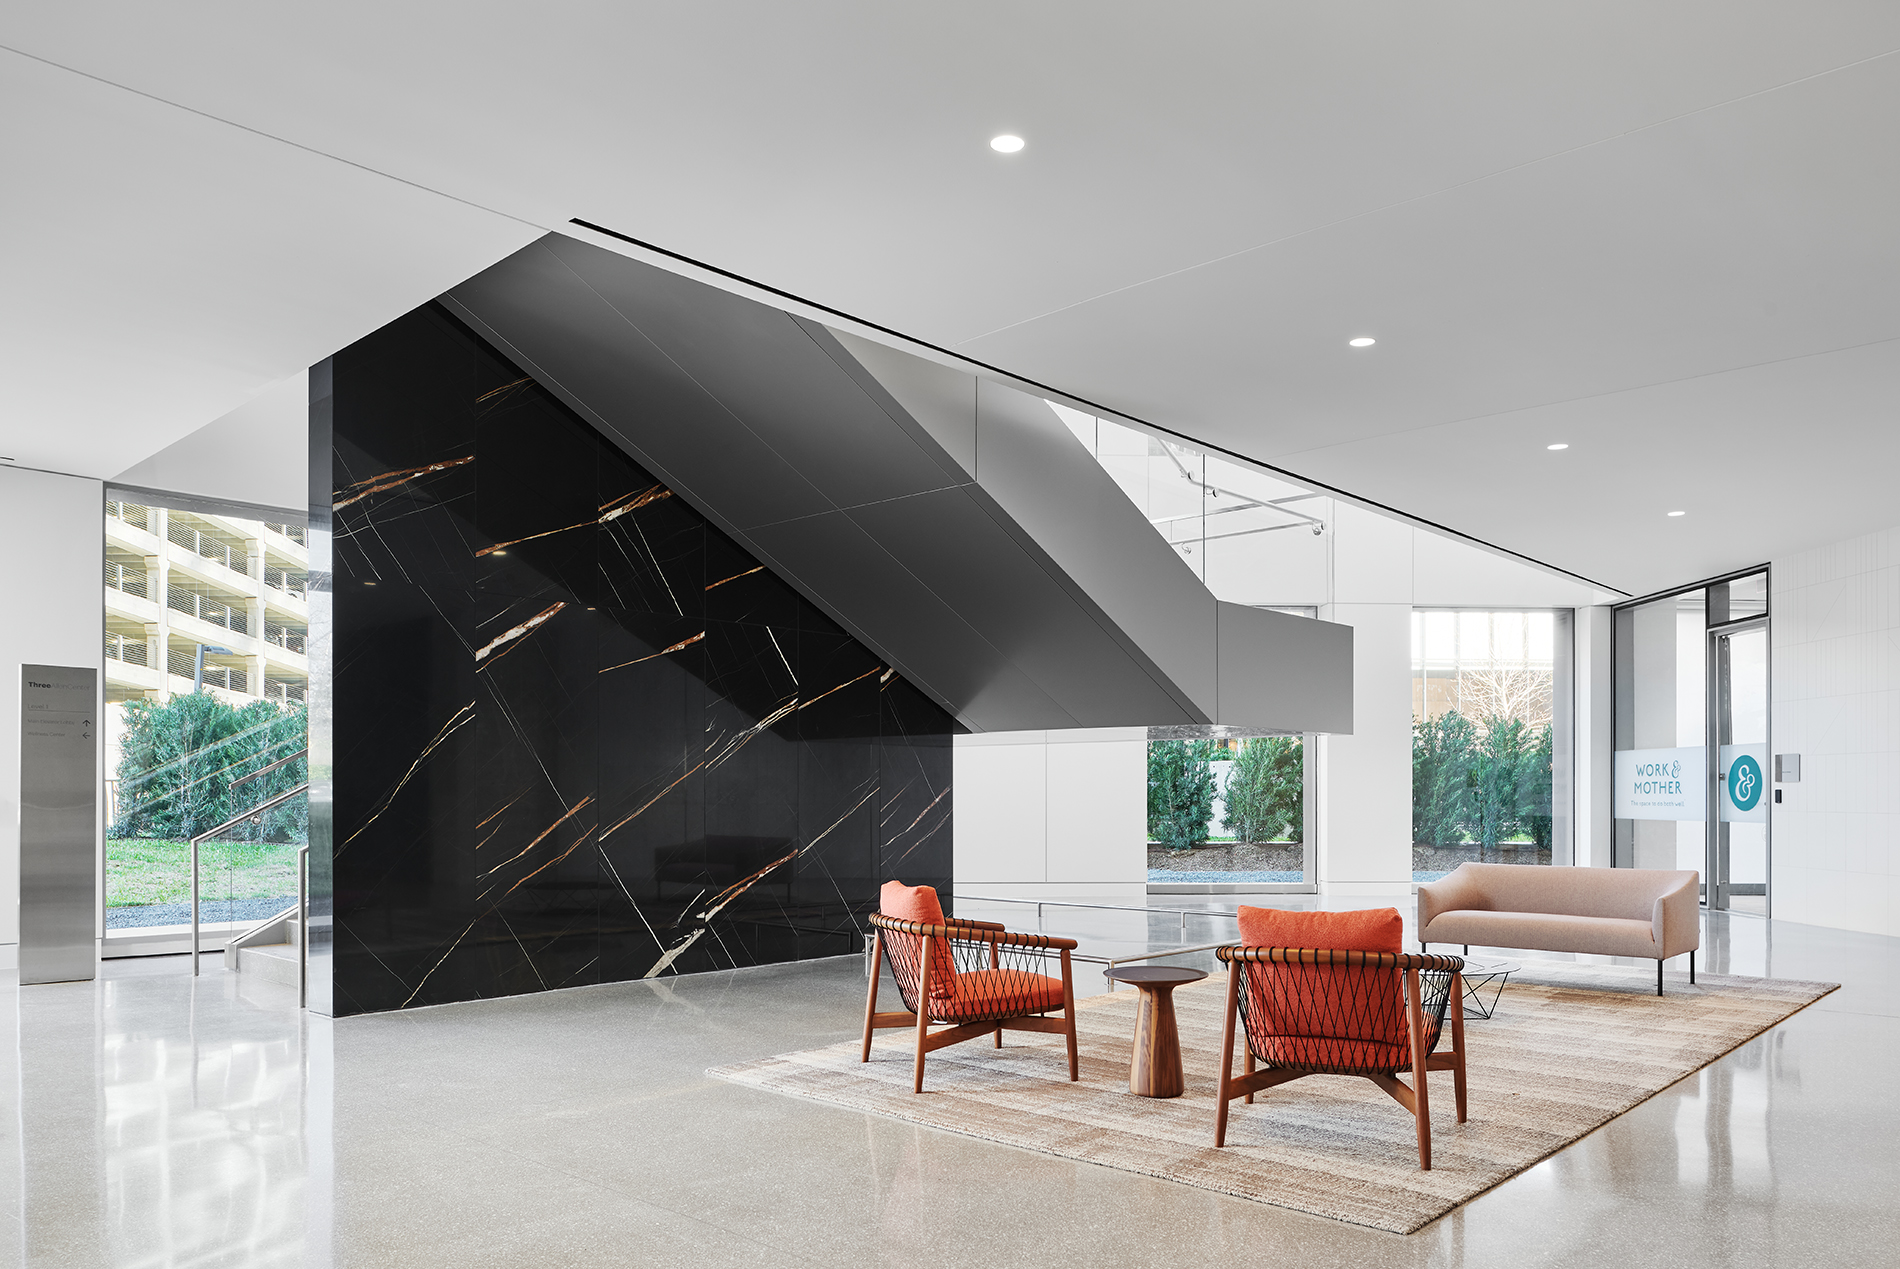 Lobby in a modern office building